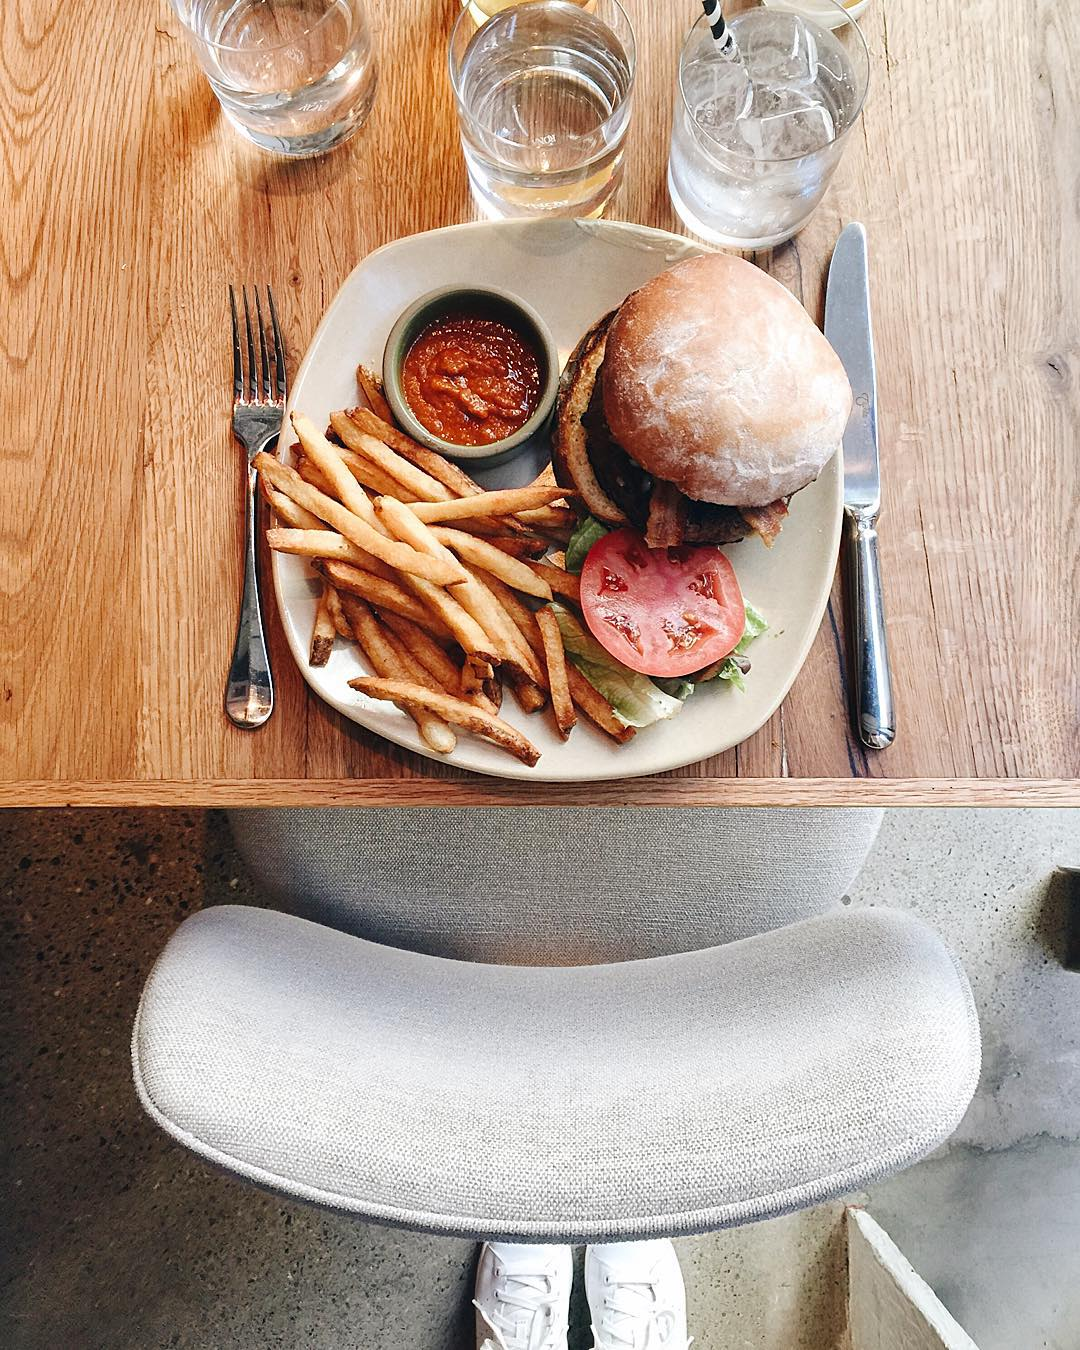 The First One 1hotelcp  Coucou coratofr instafood burger newyork